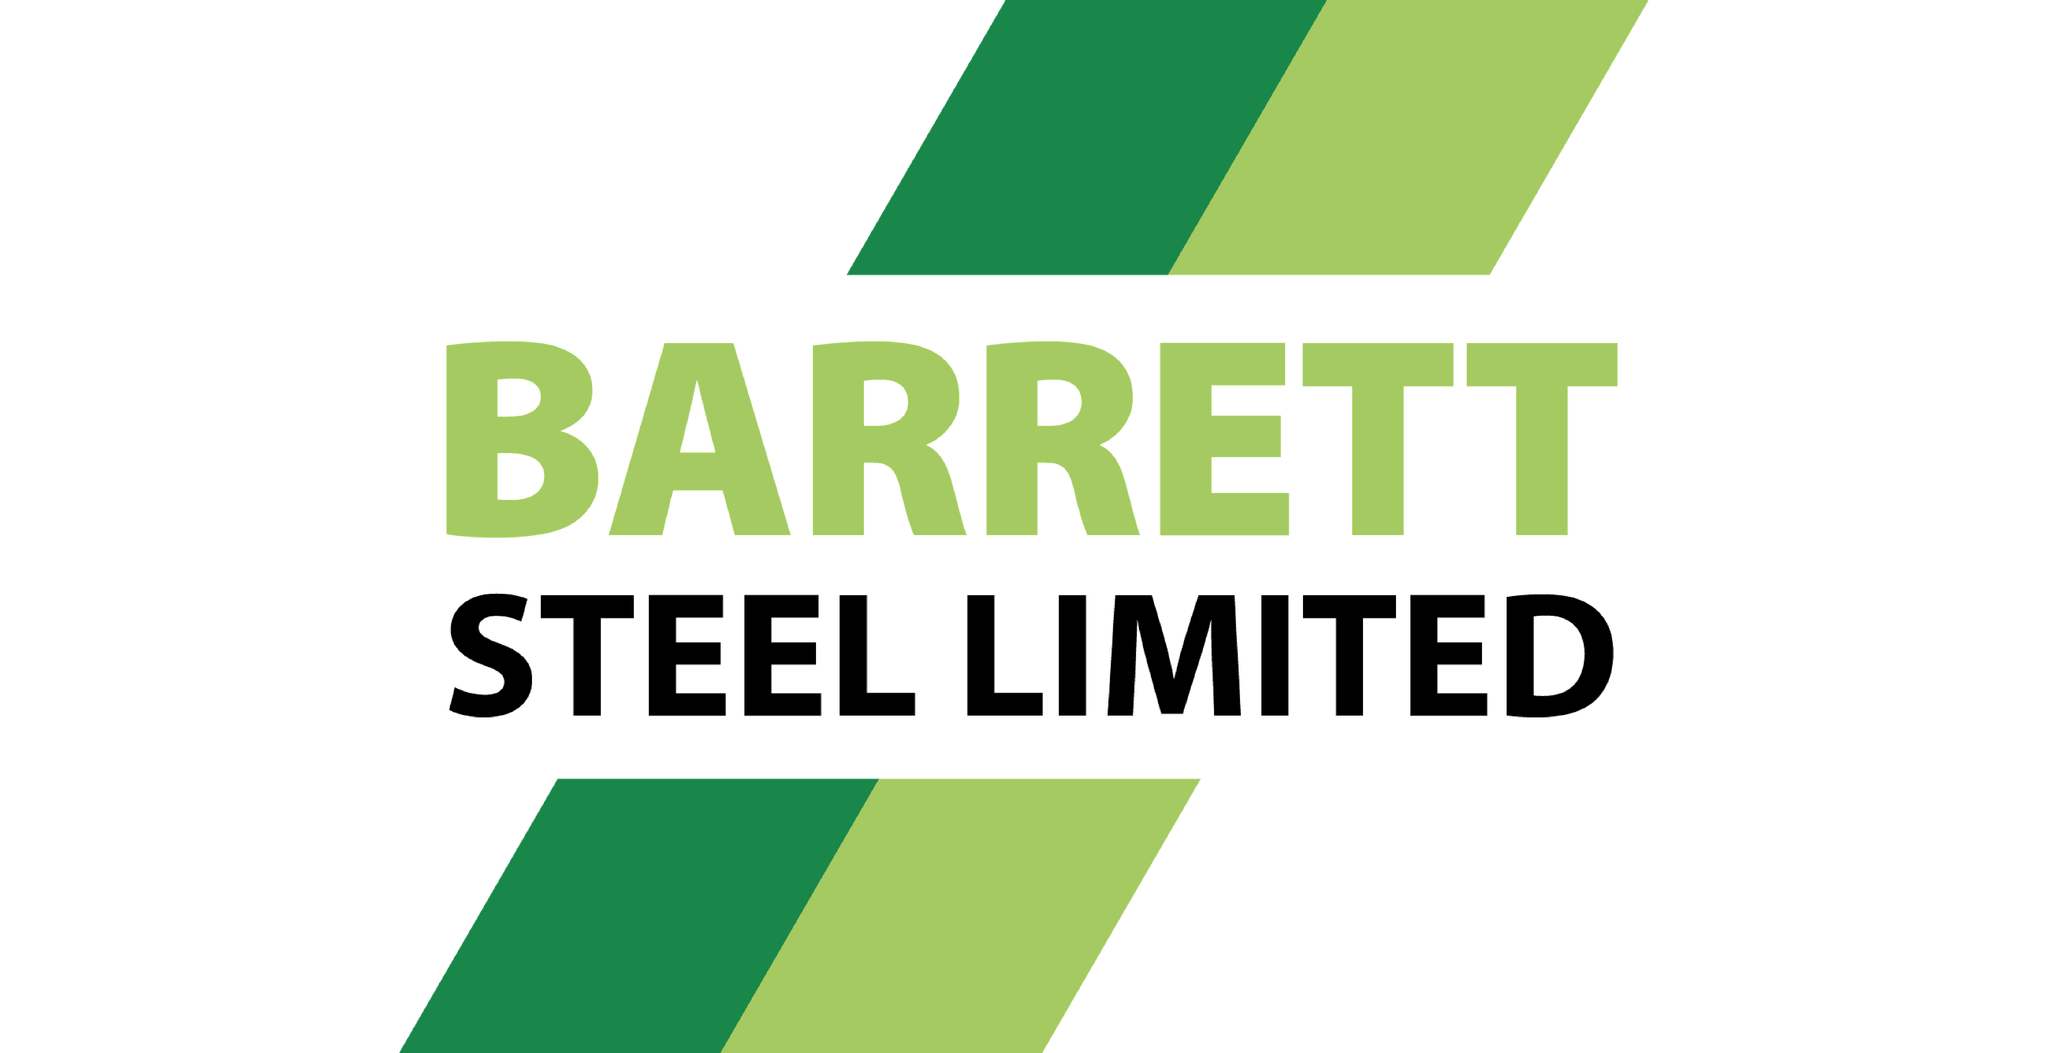 Barrett Steel Limited